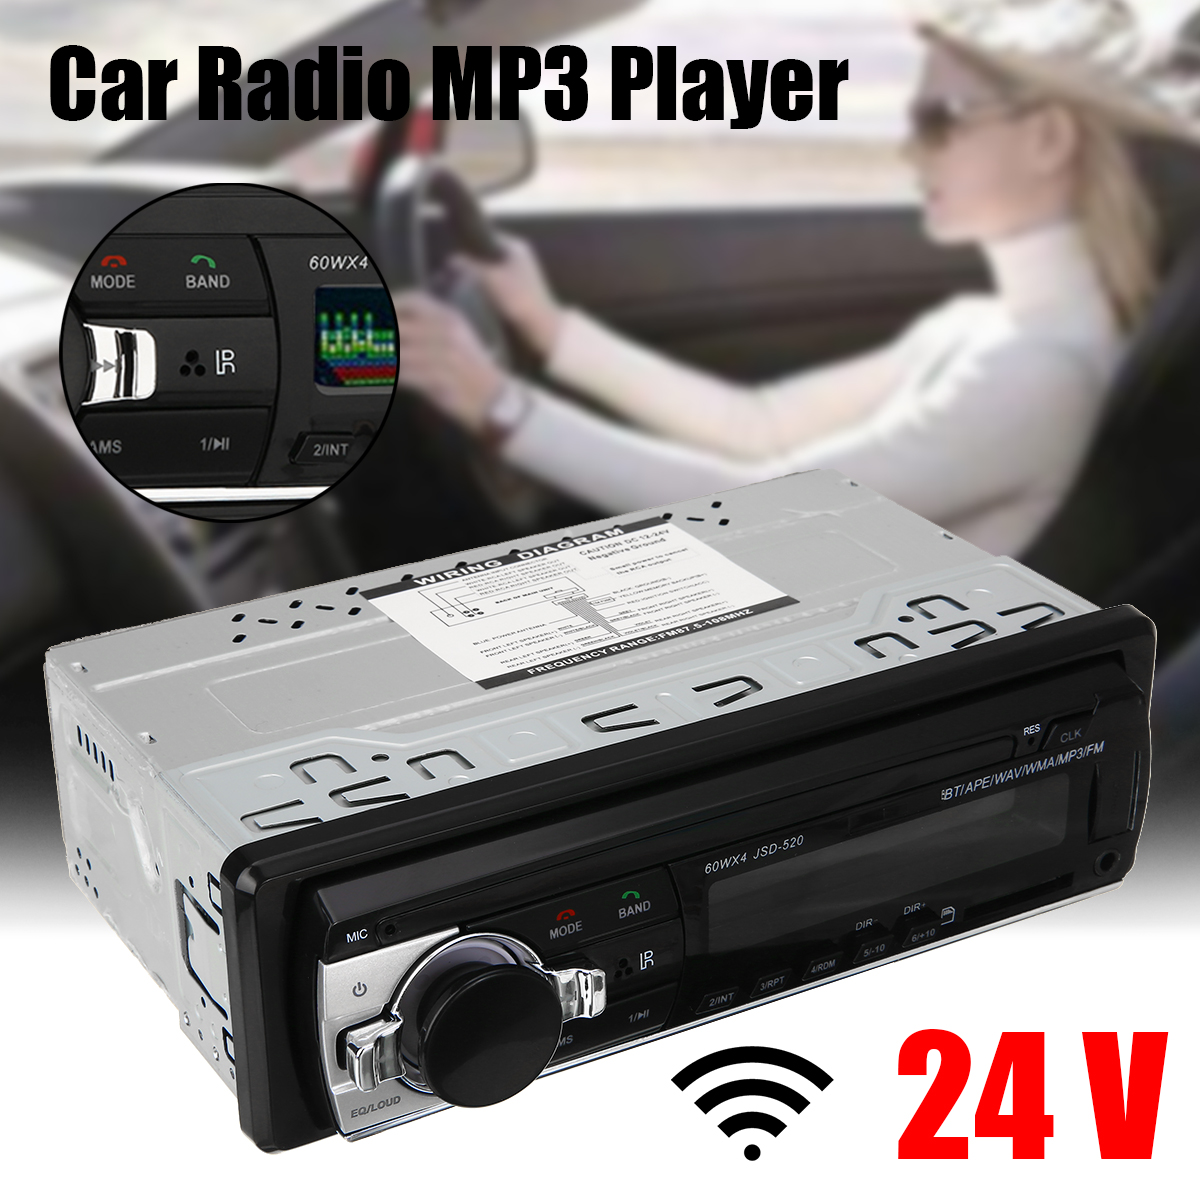 1pc 24V Car Auto Radio Stereo Player Digital bluetooth MP3 Player FM Stereo Audio USB/SD Remote Control Accessories image